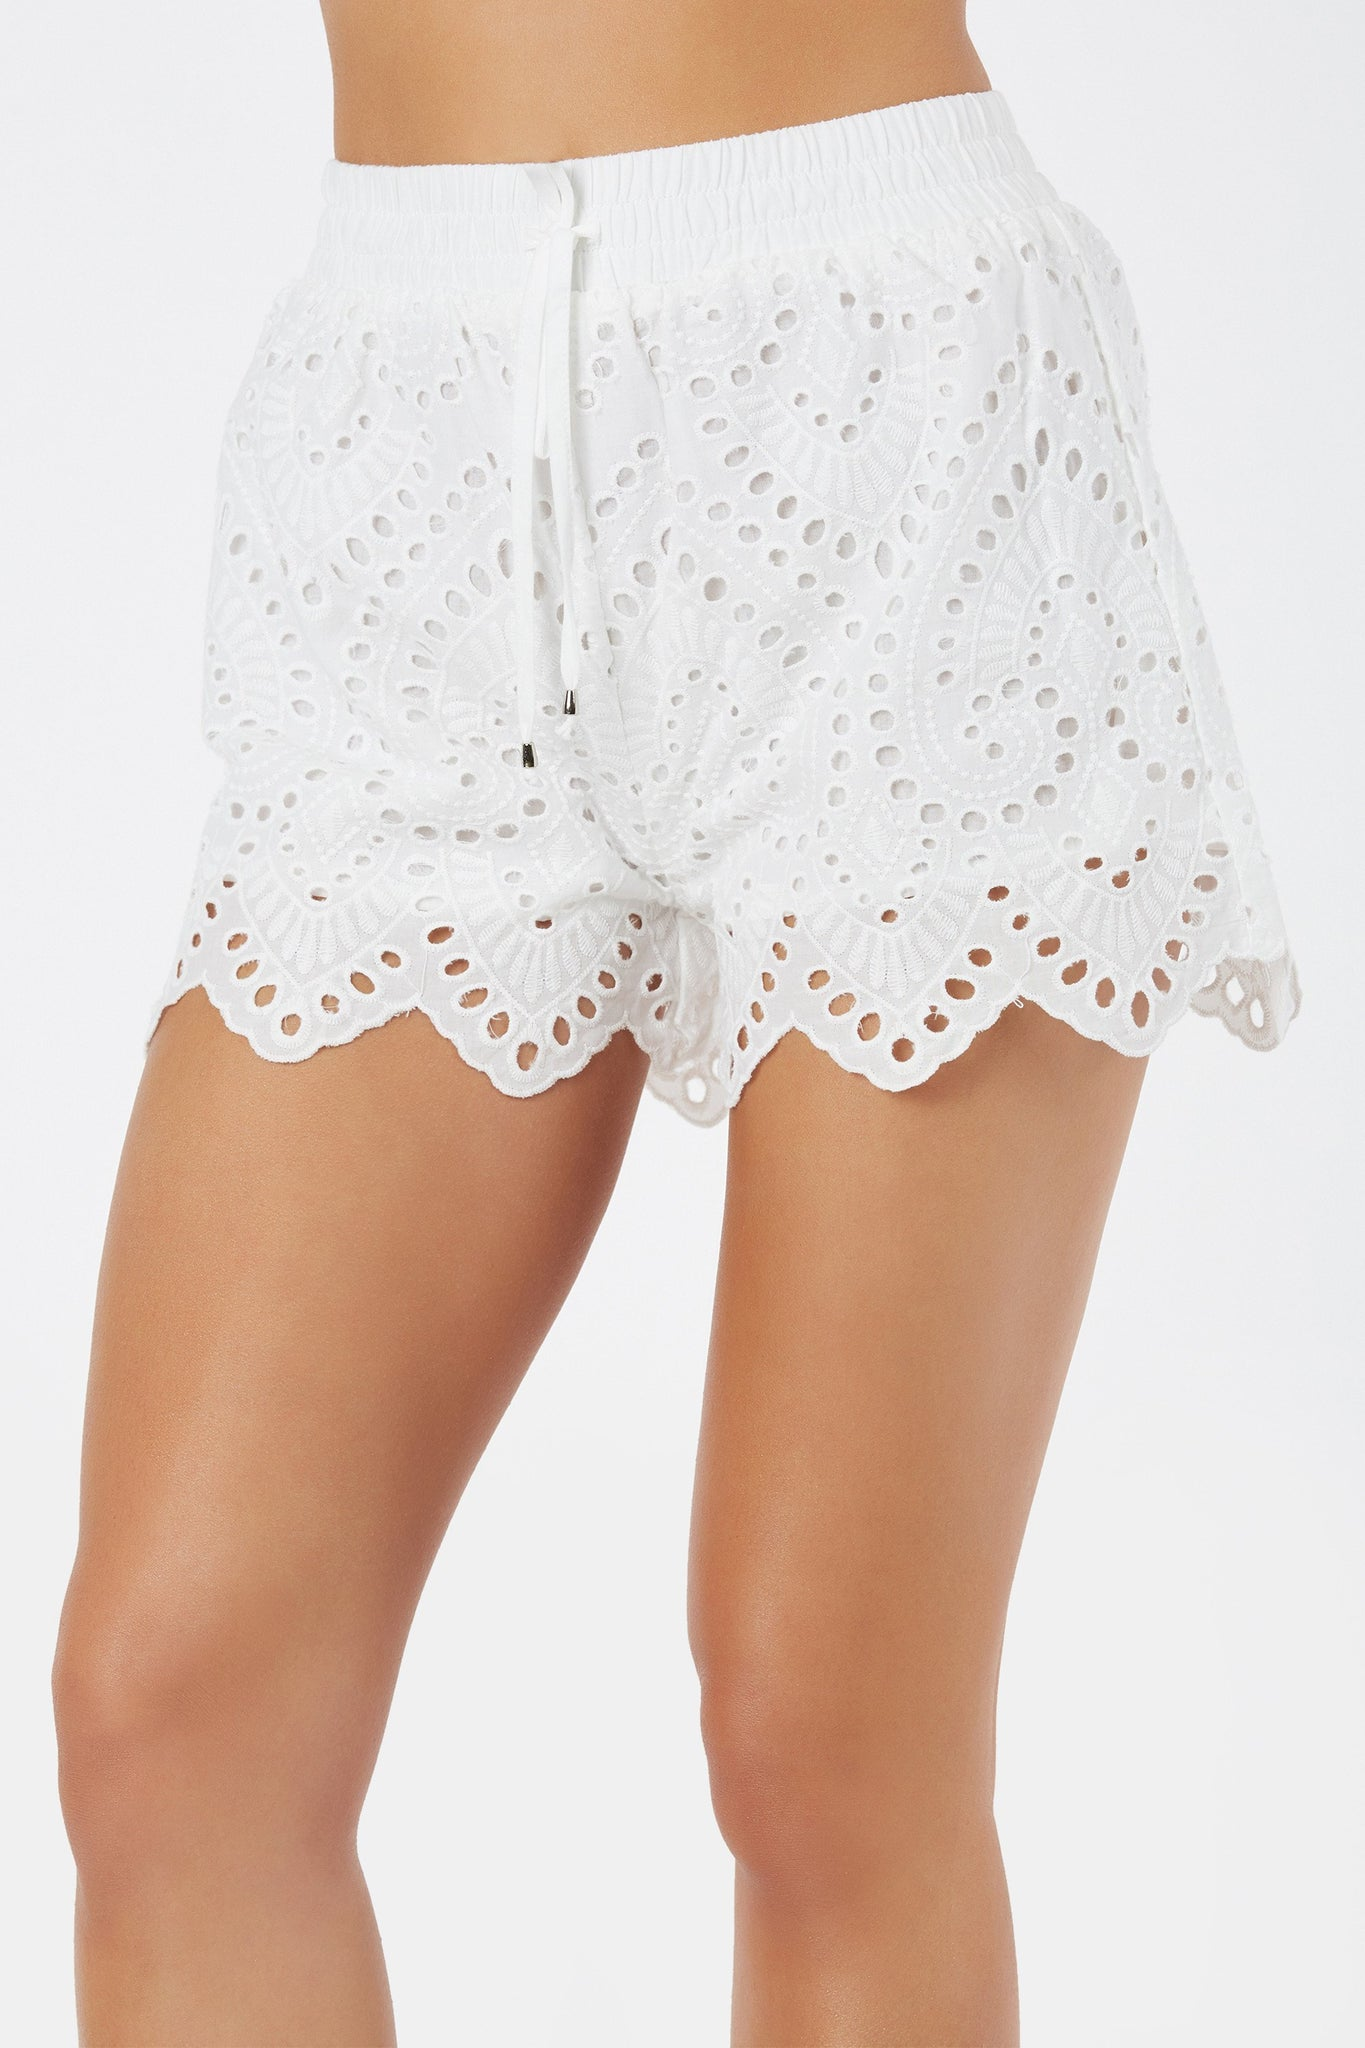 Fully lined high rise shorts with floral embroidery throughout. Elasticized waist with faux drawstring detailing and A-line hem finish.